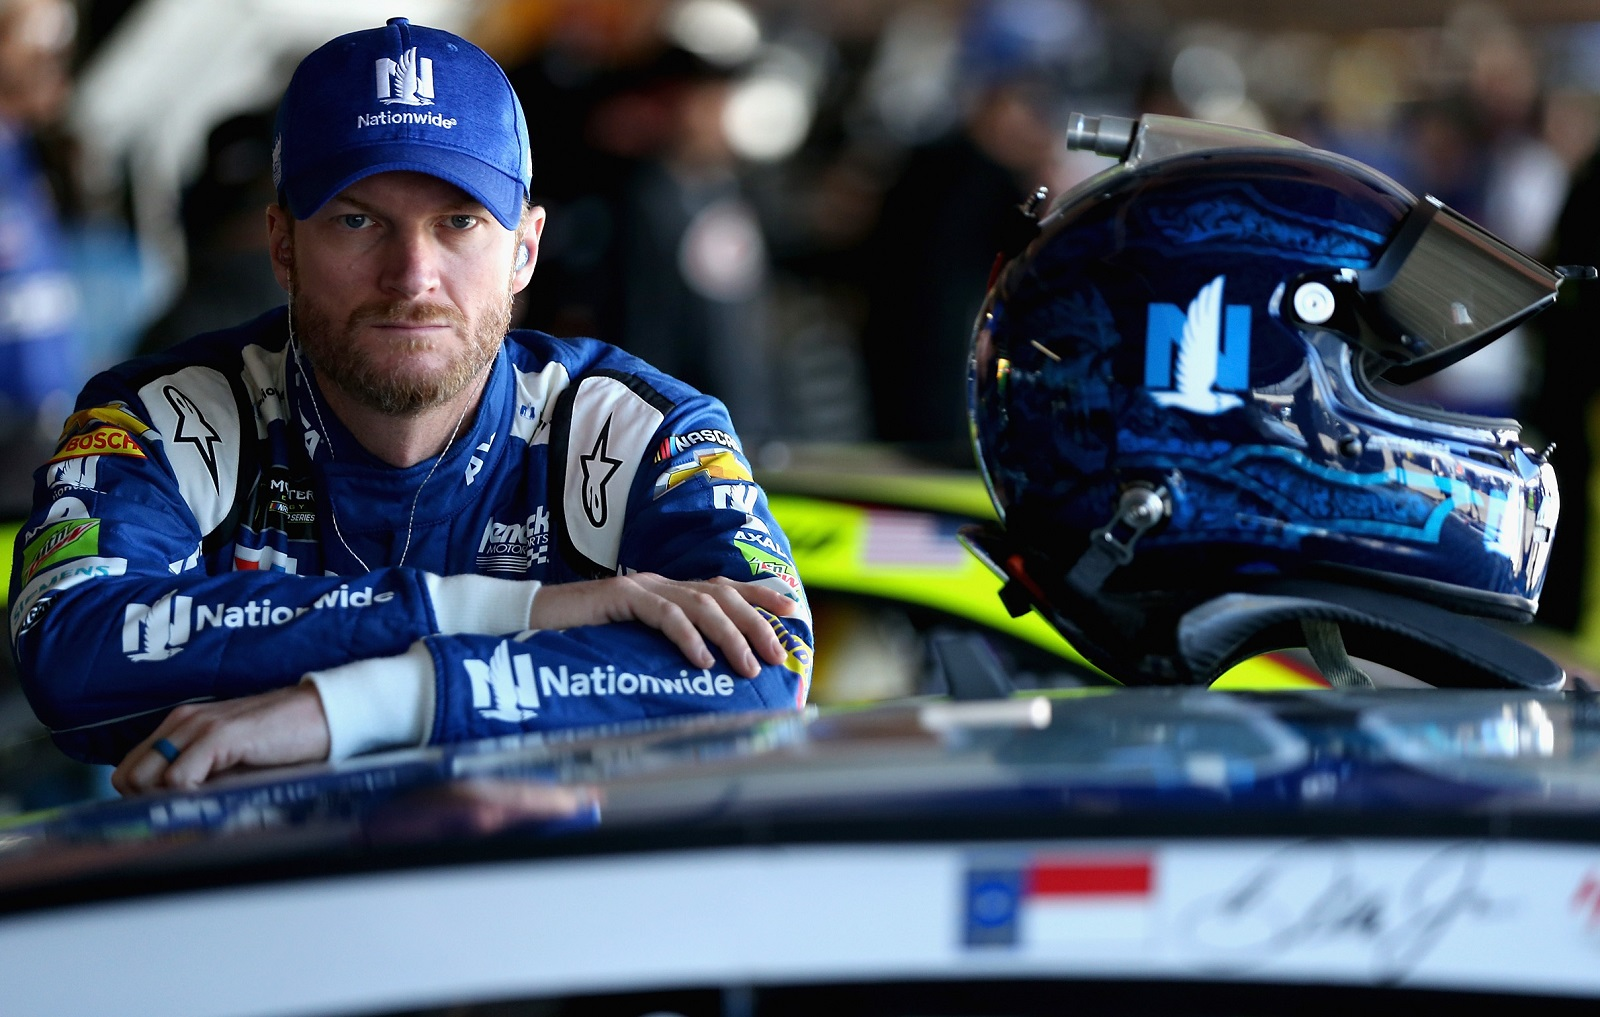 Dale earnhardt Jr. ghost believes saved his life